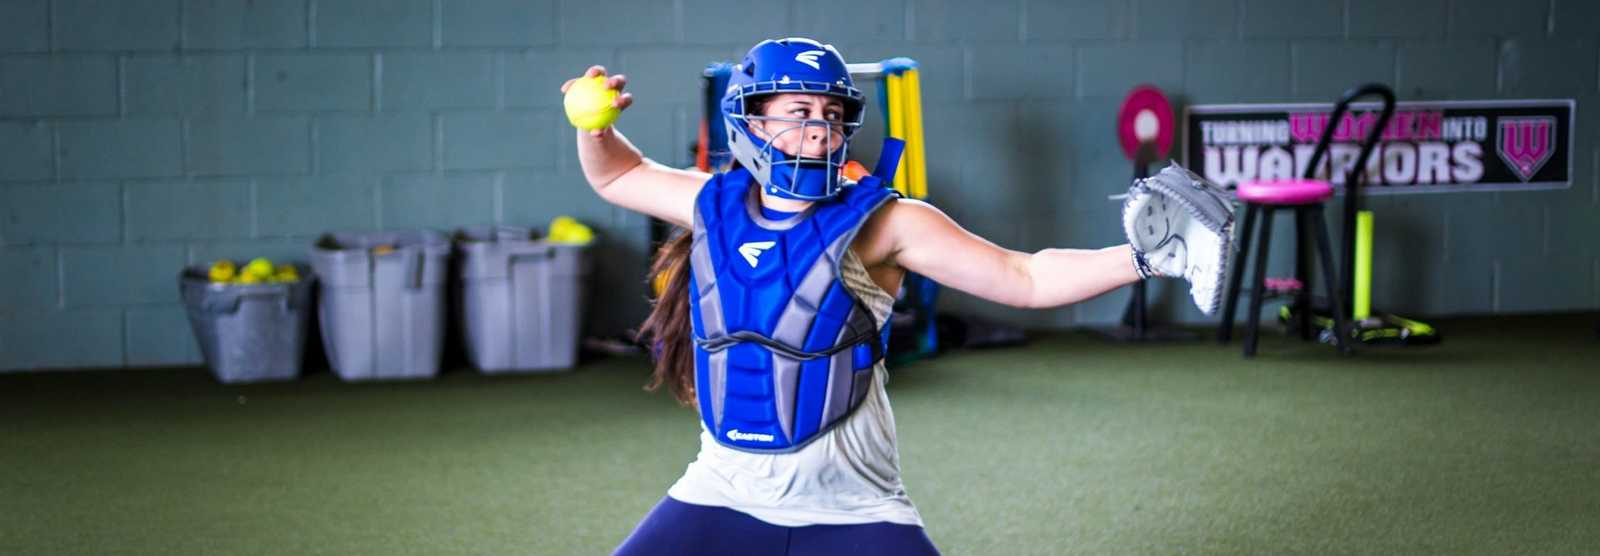 2018-fastpitch-softball-catchers-protective